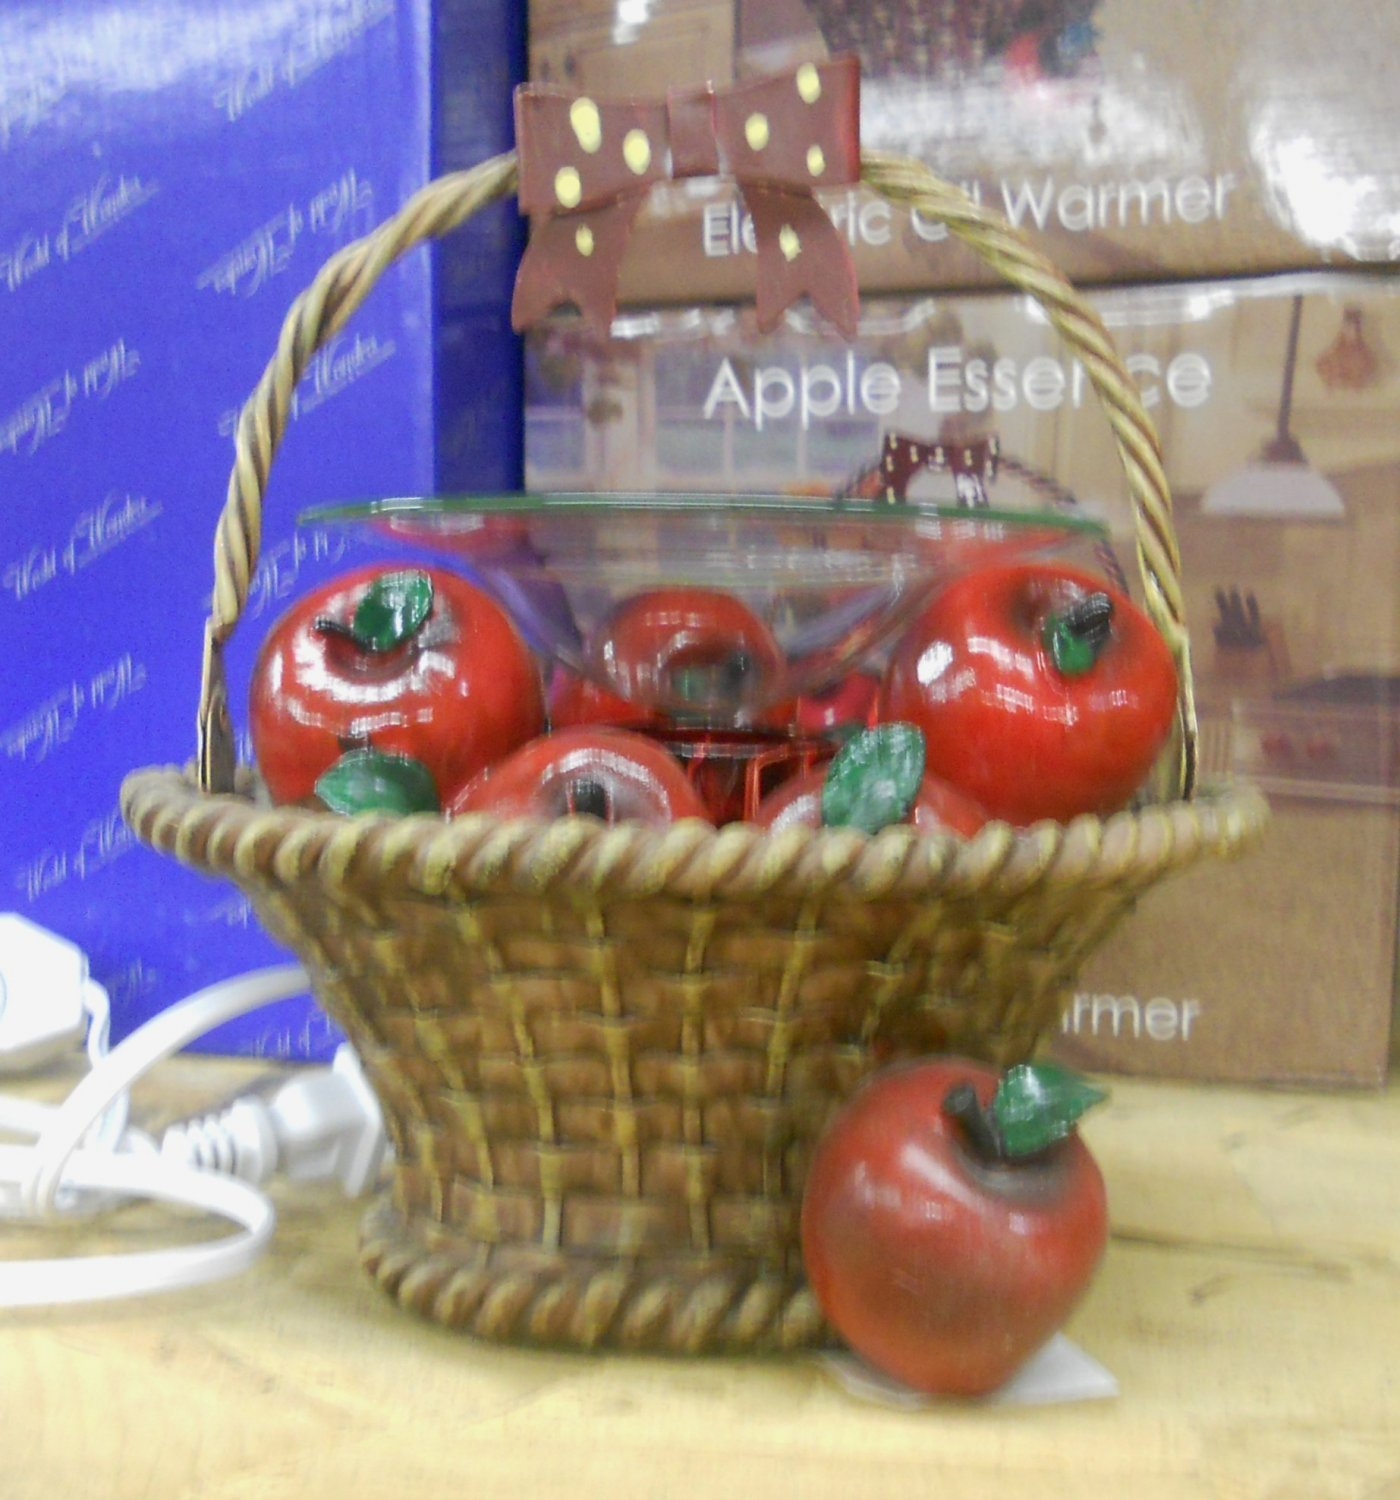 APPLES Electric oil Warmer - Limited Edition